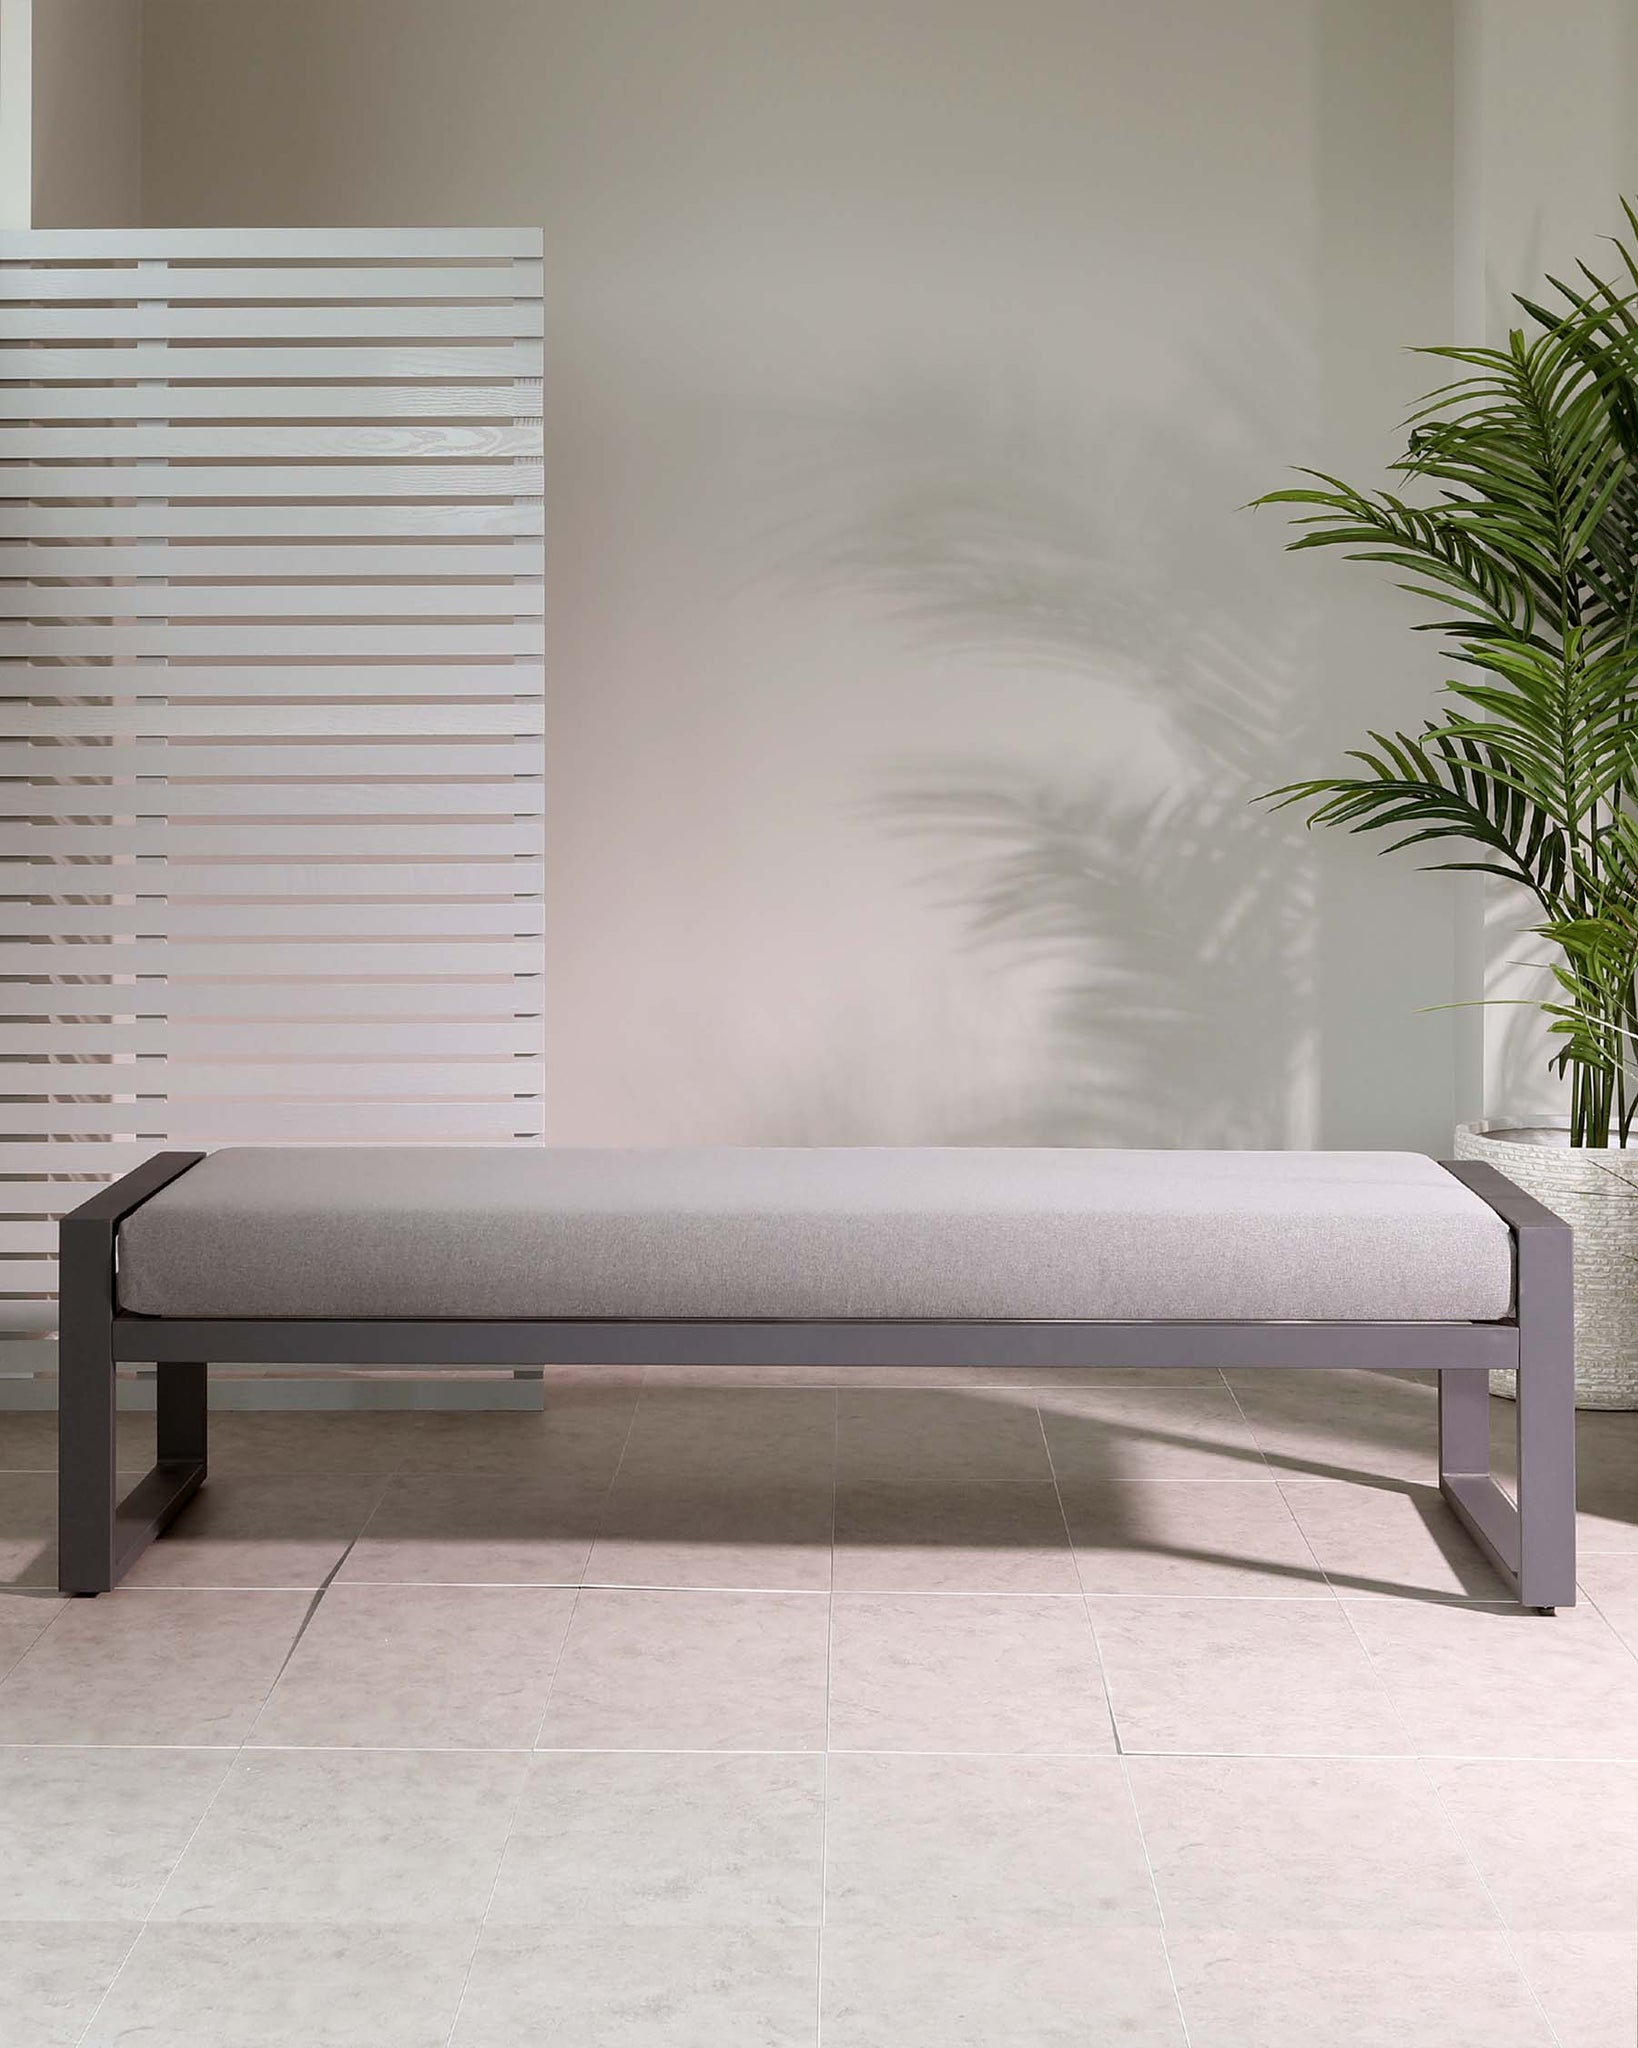 Verano Grey 3 Seater Backless Garden Sofa Bench